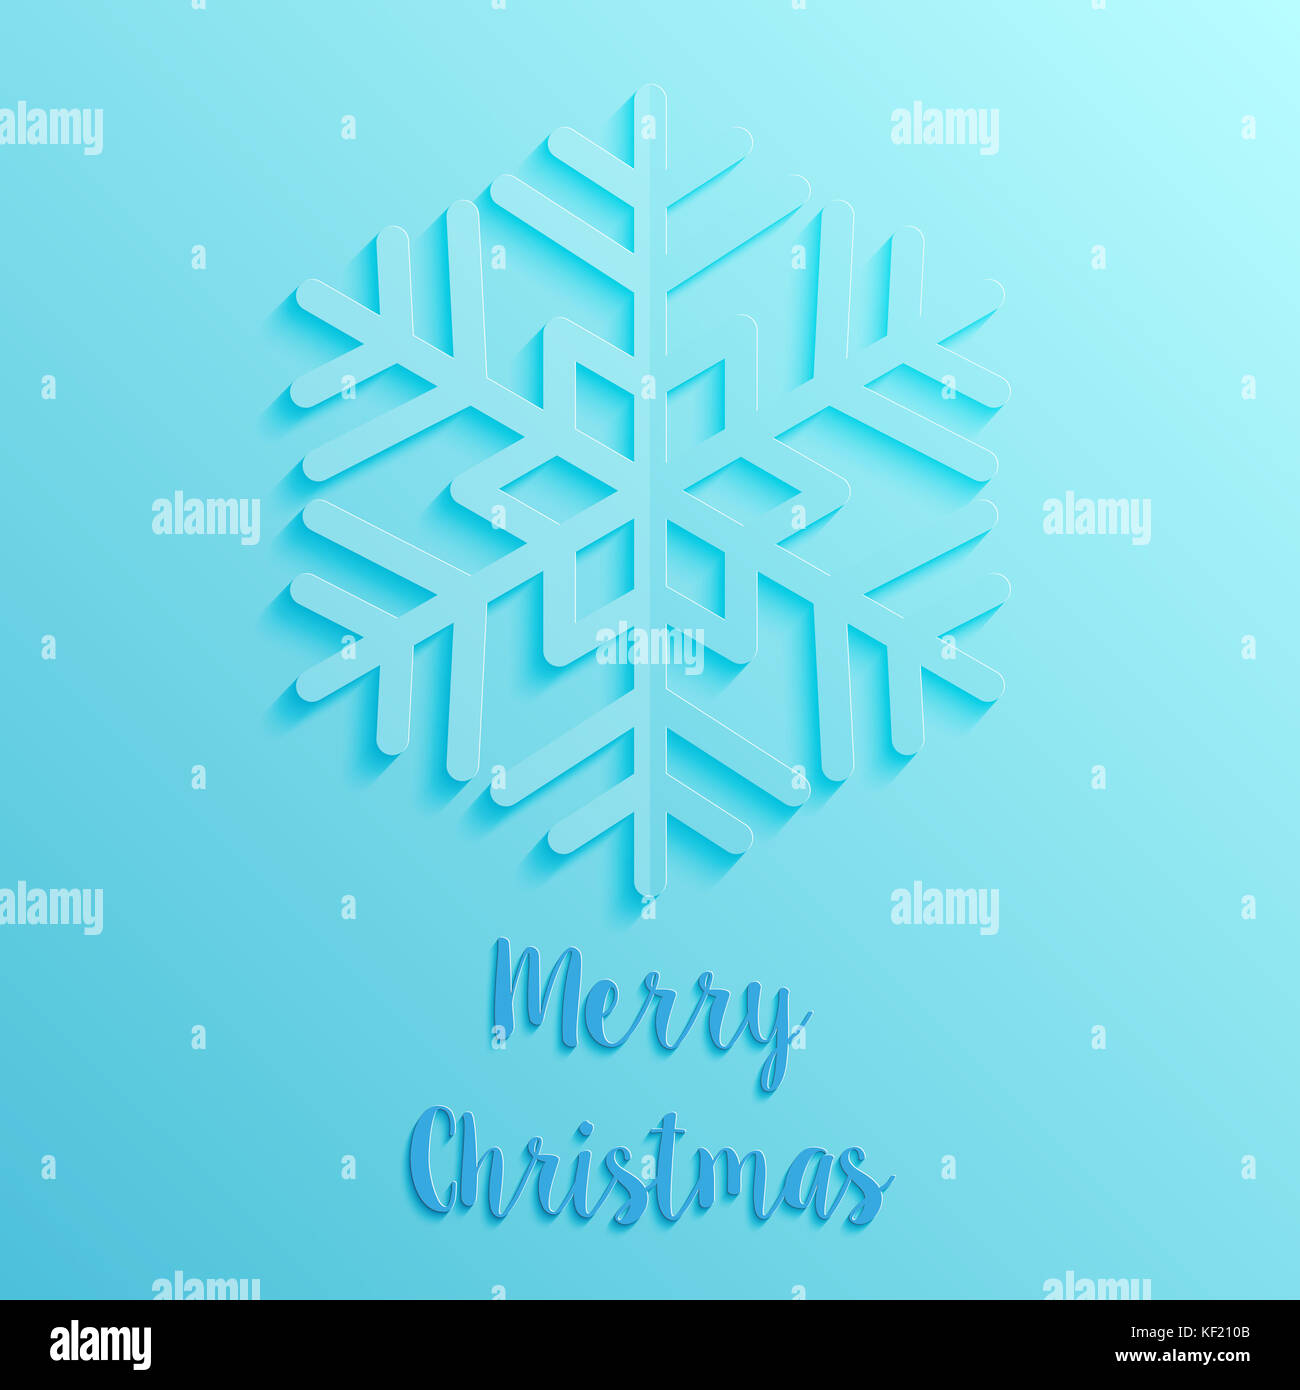 Winter Stock Images  Download 2587553 Photos